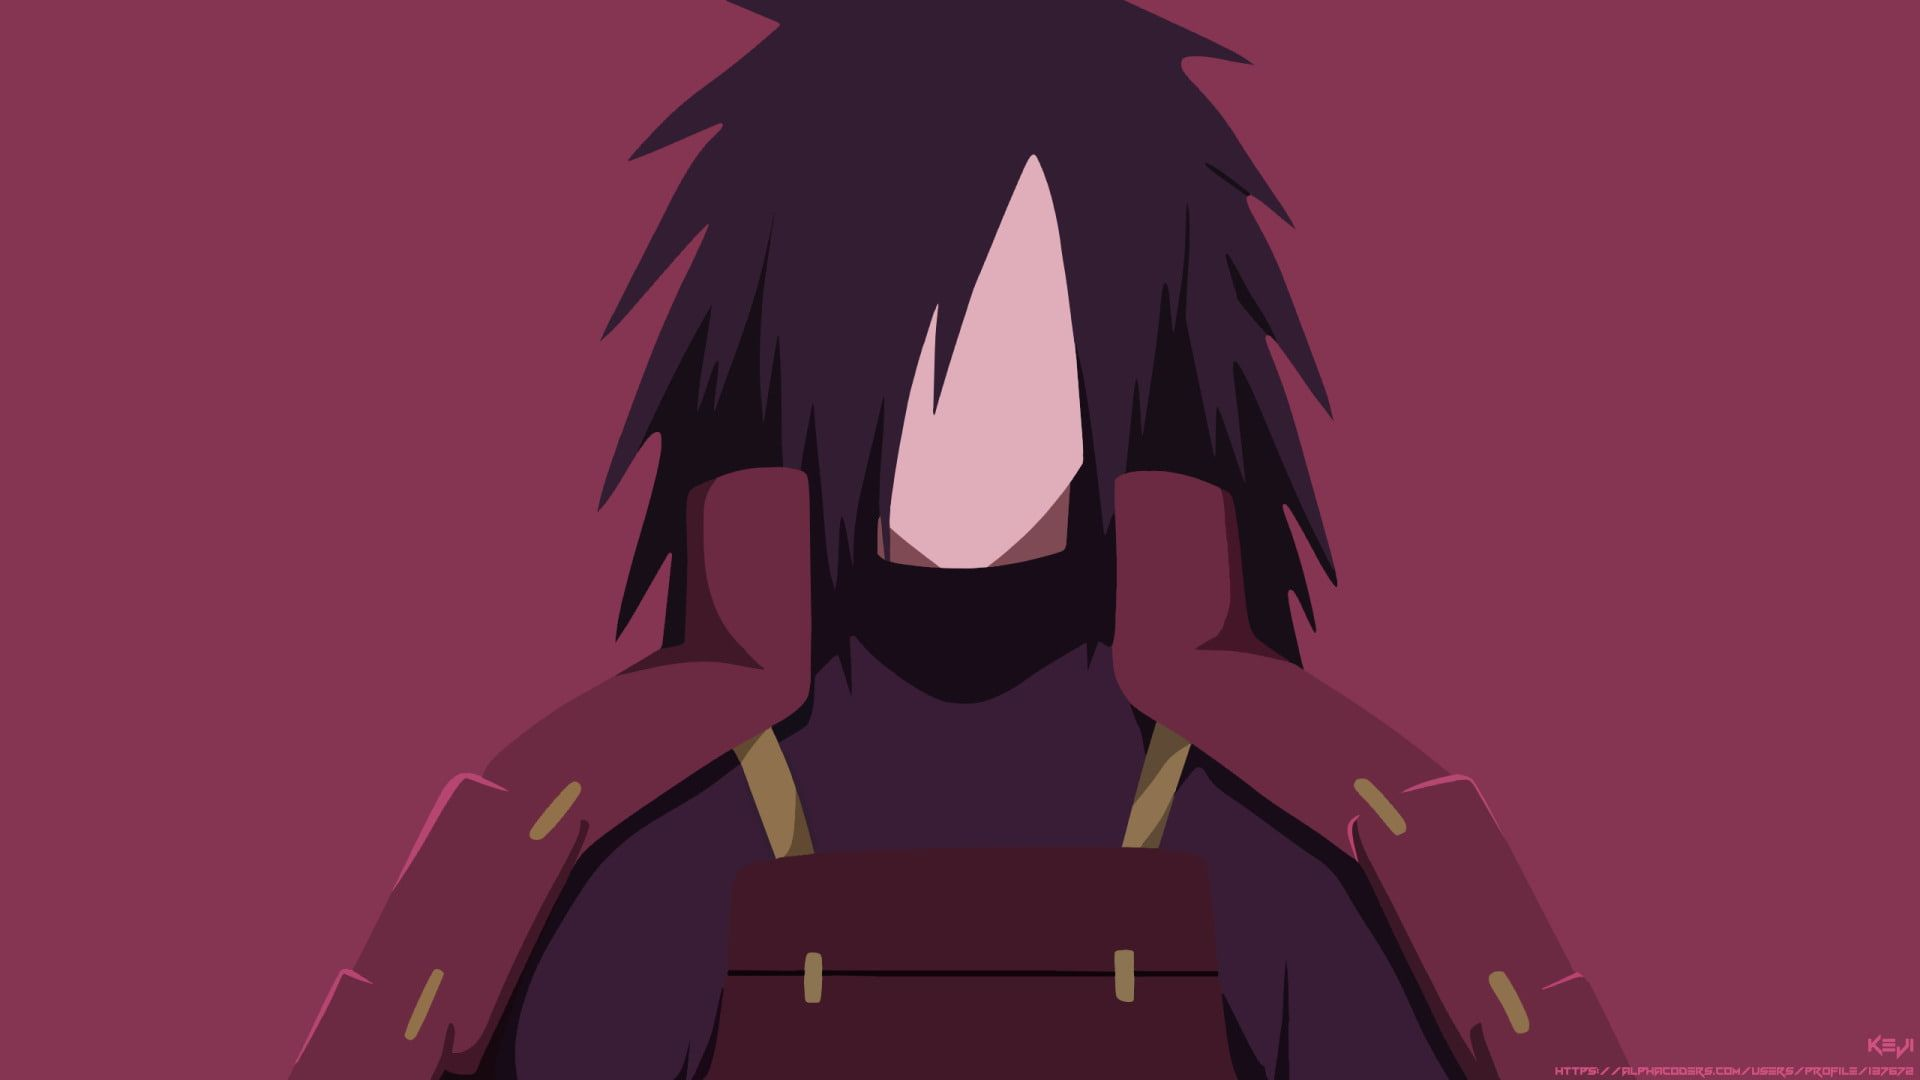 Anime Naruto Black Hair Boy Madara Uchiha Minimalist Uchiha